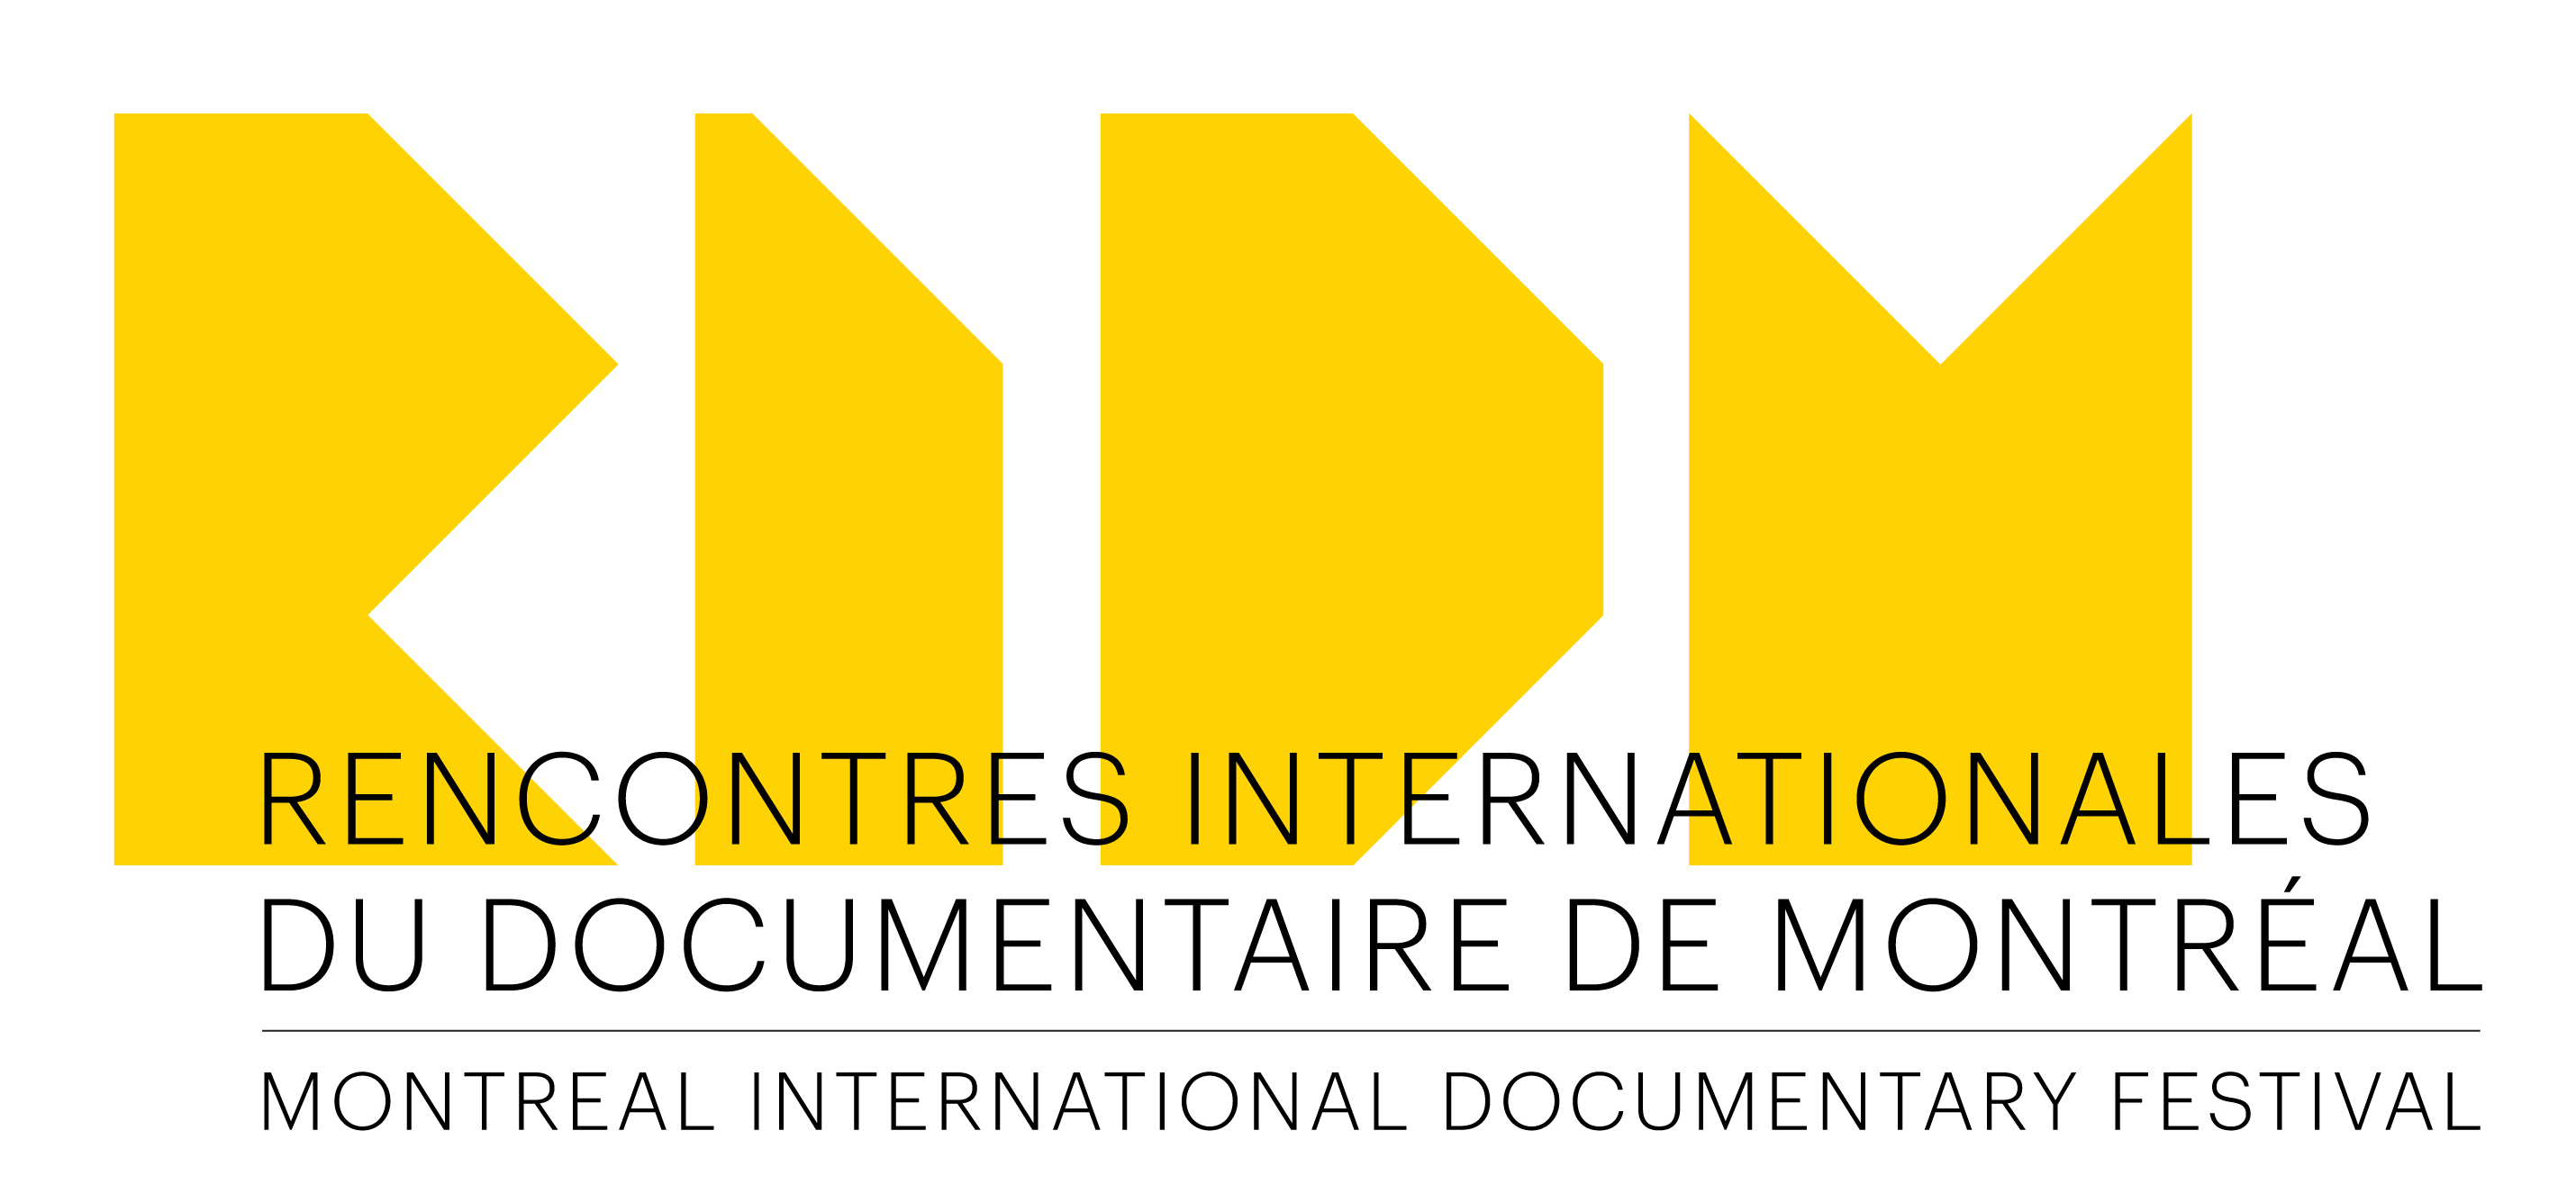 Ubifrance rencontres internationales du numerique